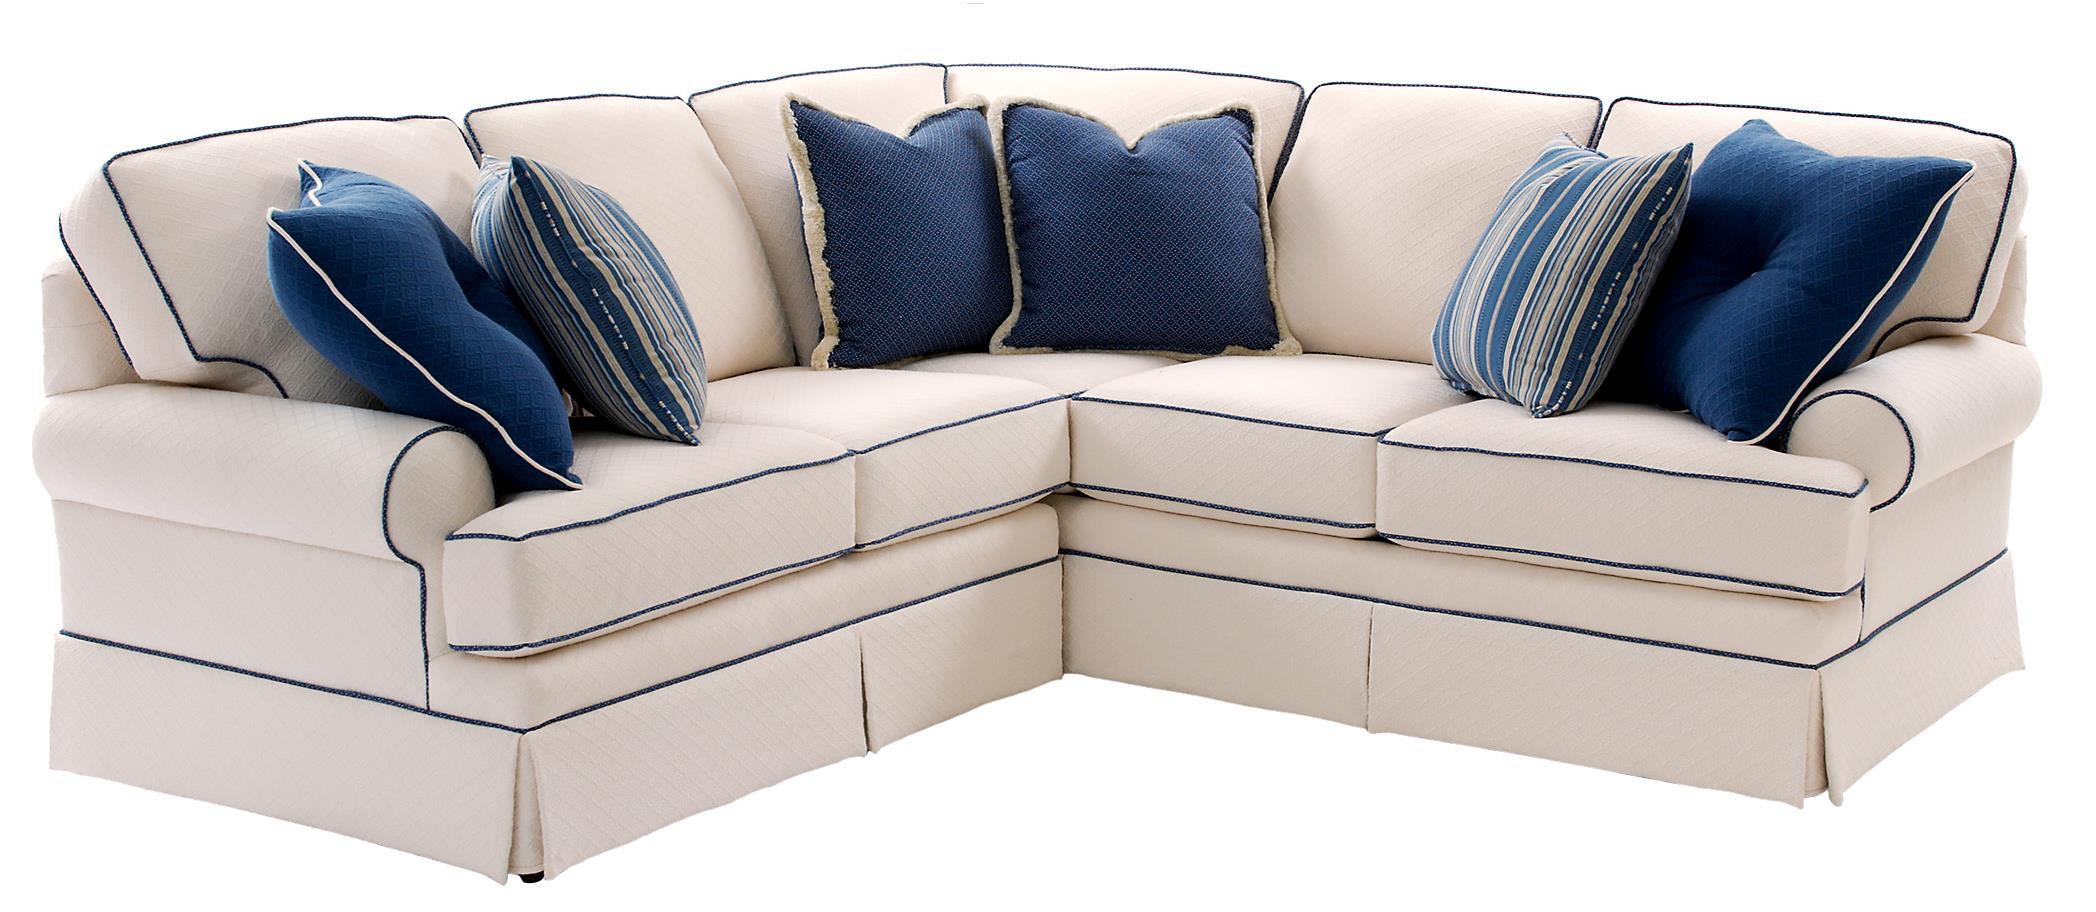 Smith Brothers Build Your Own 5000 Series Sectional Sofa With Rolled Arms And Skirt Dunk Bright Furniture Sofas